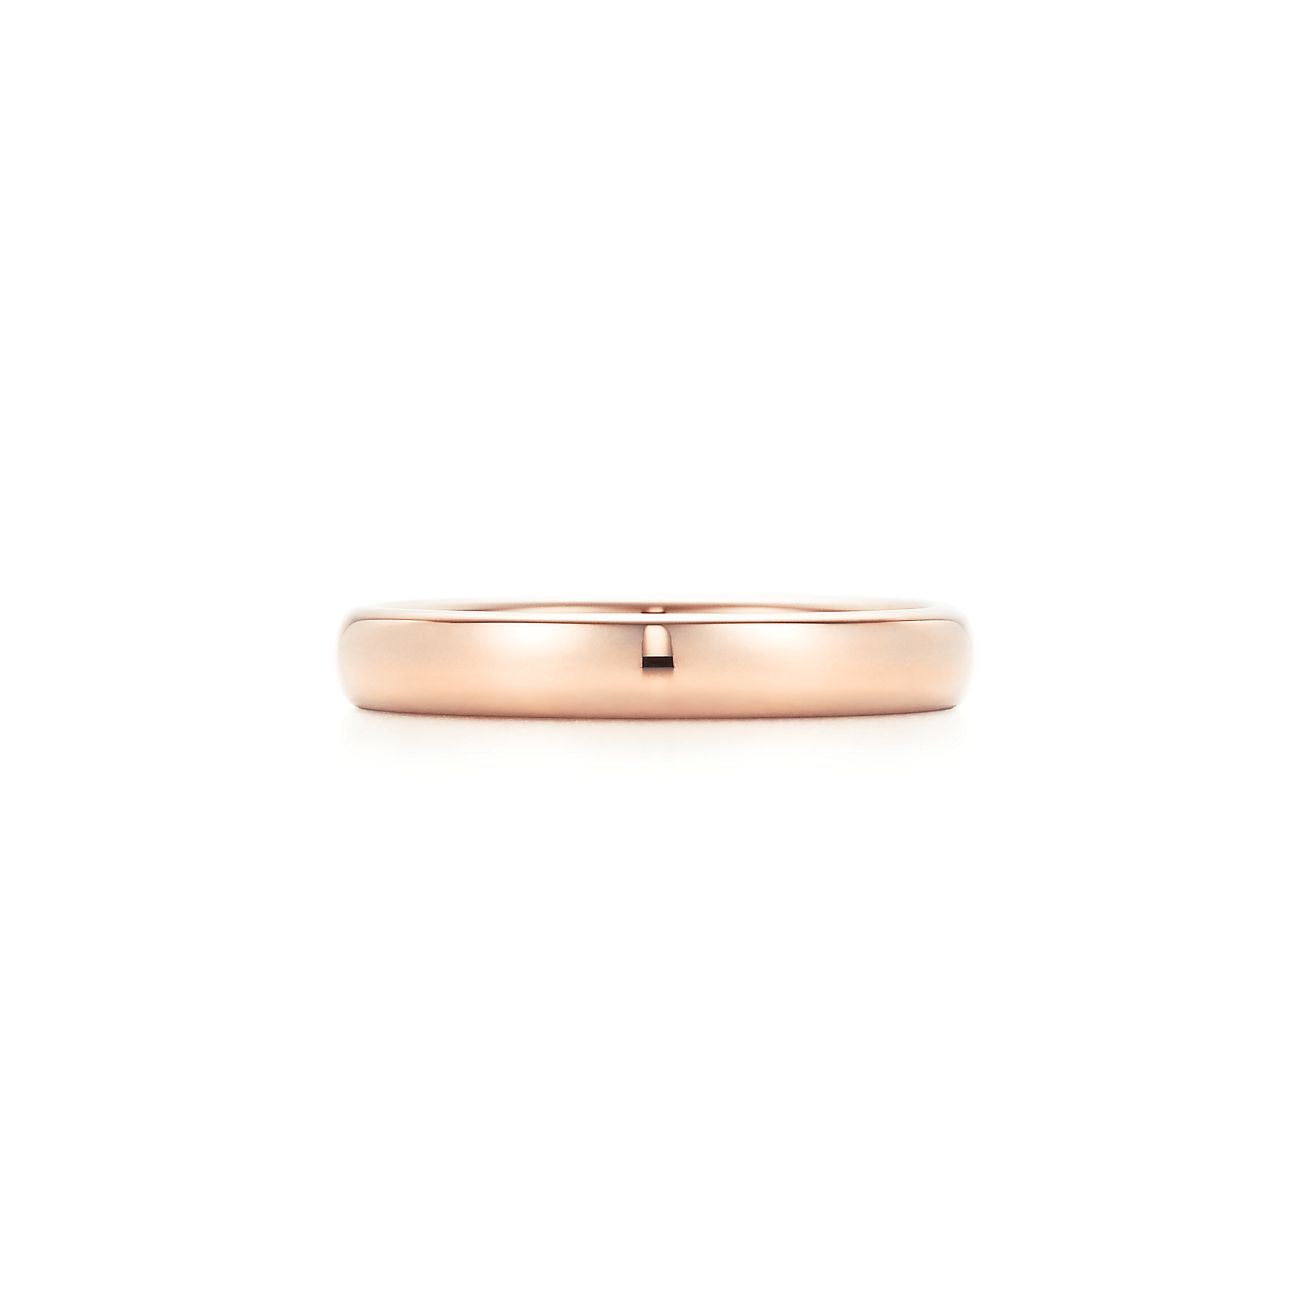 Tiffany Classic wedding band ring in 18k rose gold 3 mm wide